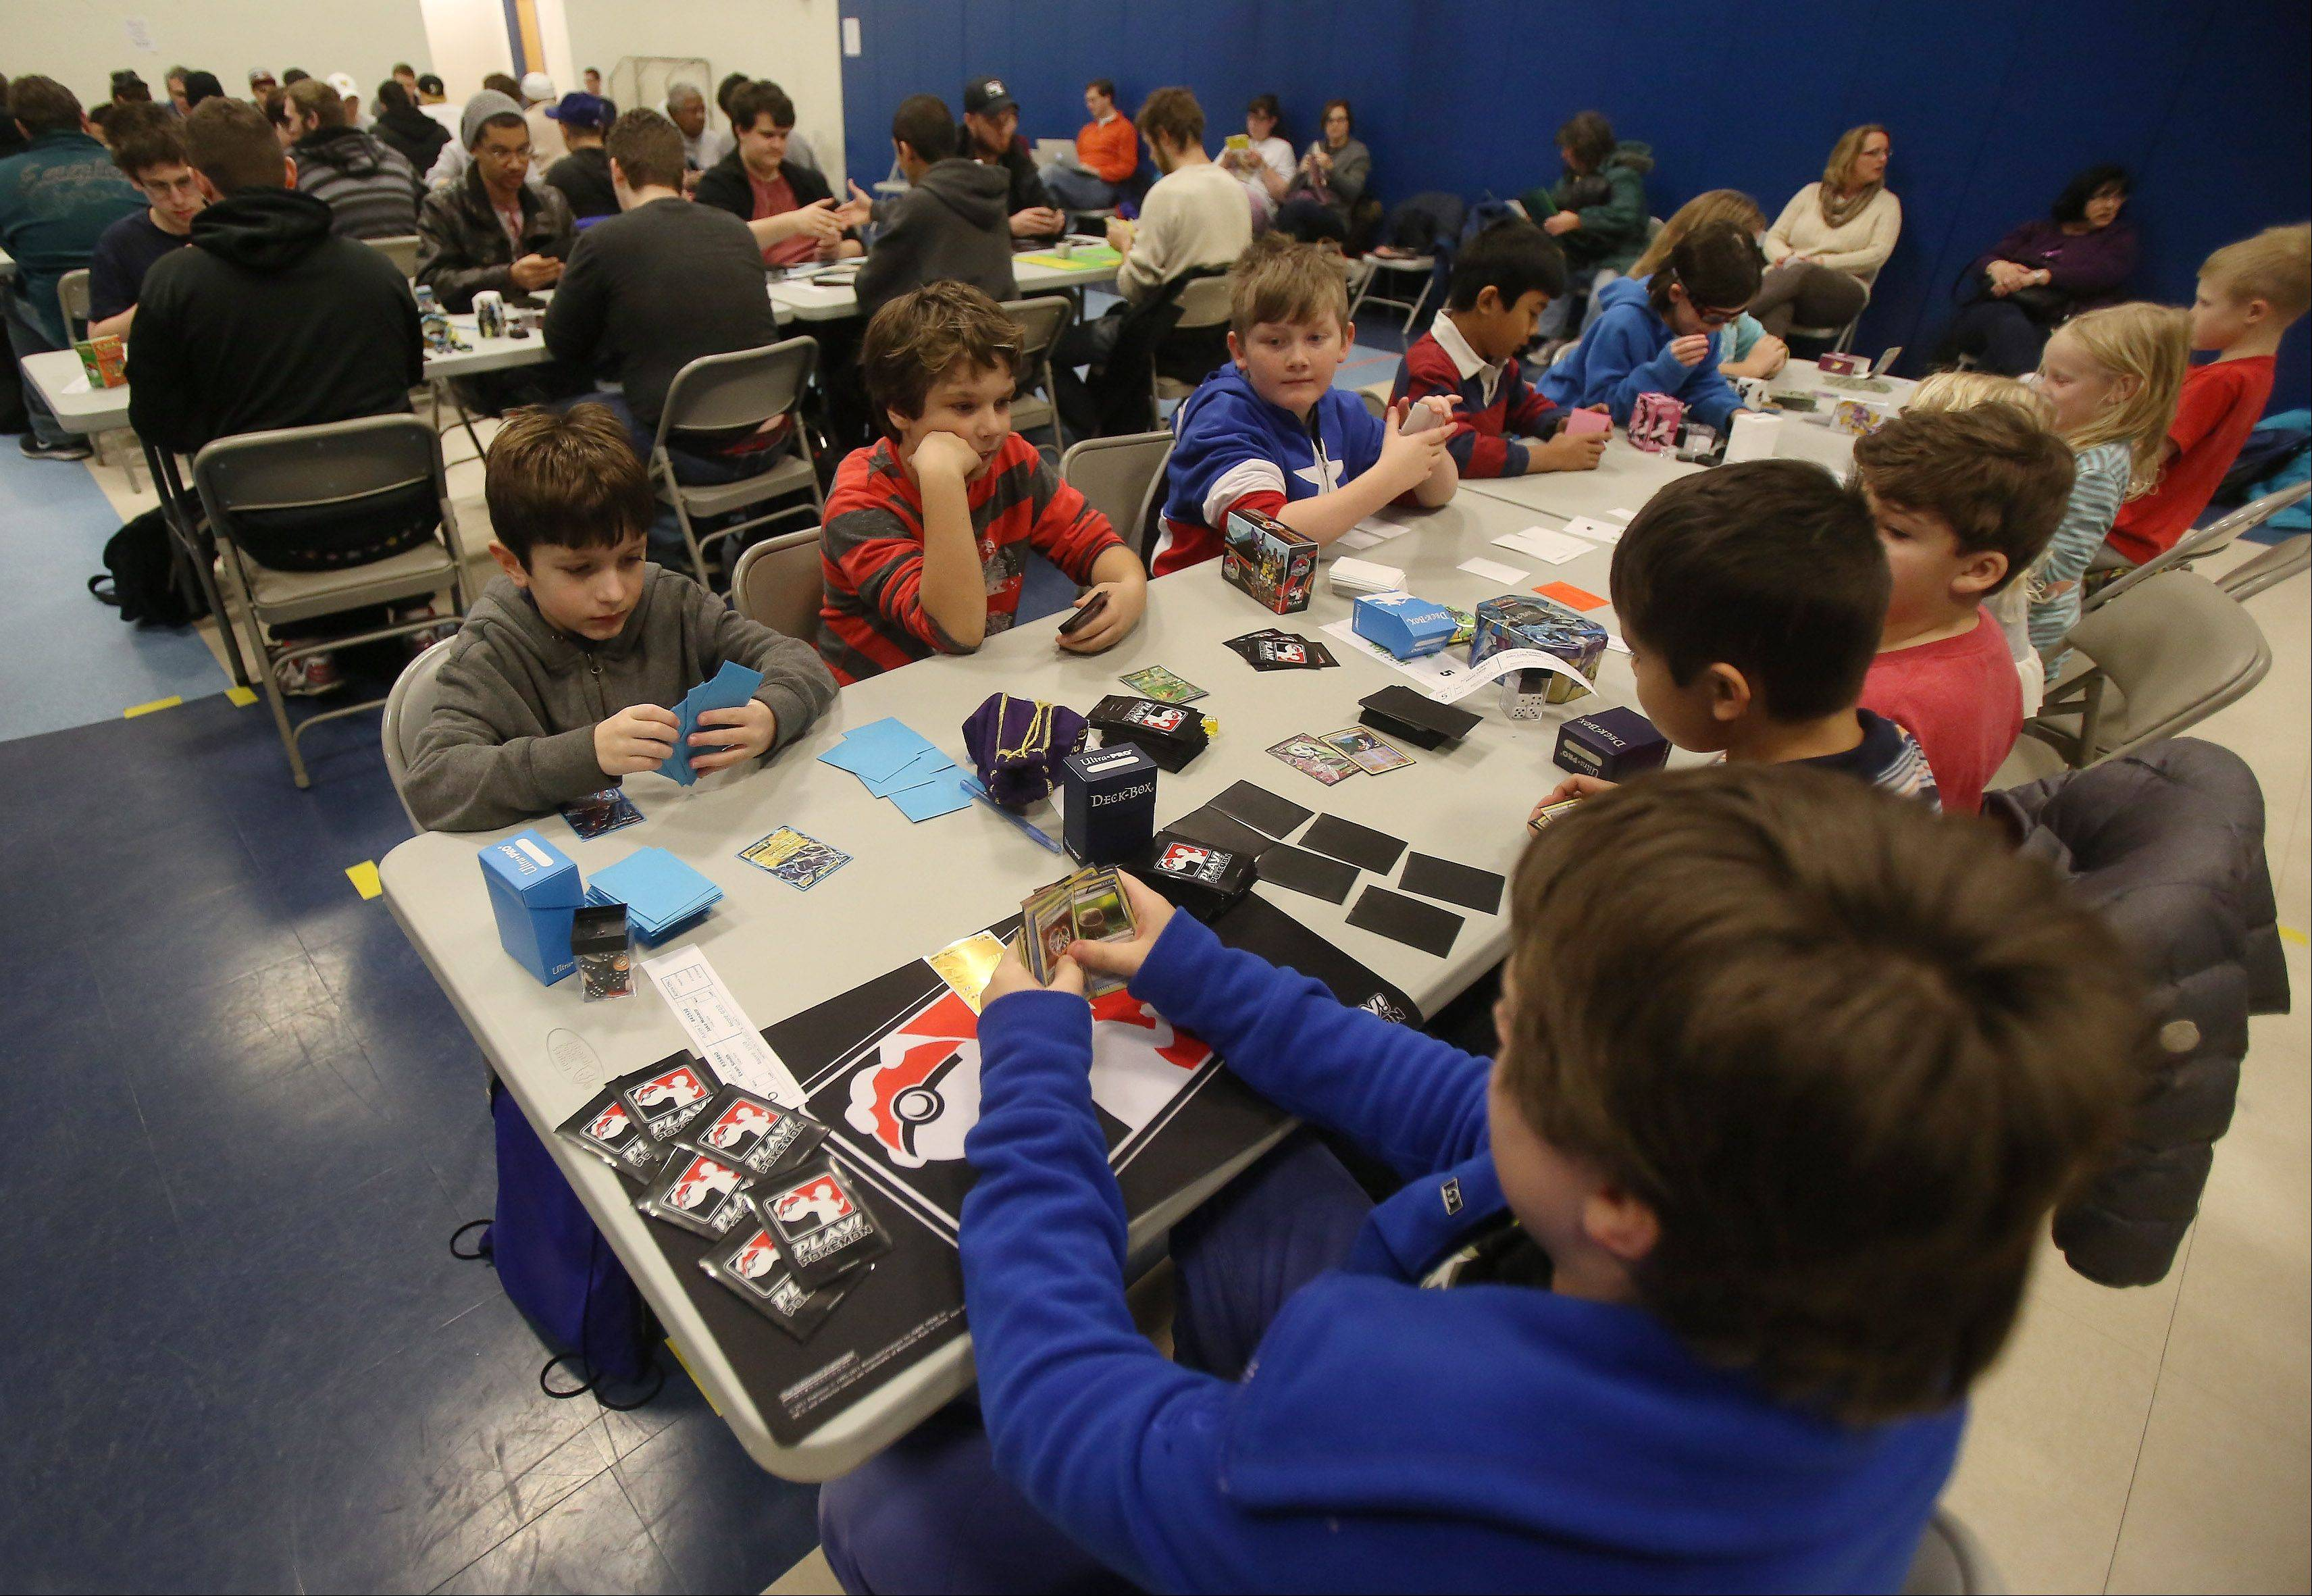 Both children and adults play during the Pokemon Trading Card Game City Championships at the Sciences and Arts Academy in Des Plaines on Sunday. The tournament attracted 89 participants from all over the Midwest, including St. Louis and Madison, Wis. Players from three age divisions competed to earn points toward a potential invitation to the 2014 Pokemon World Championships in Washington, D.C., next summer.